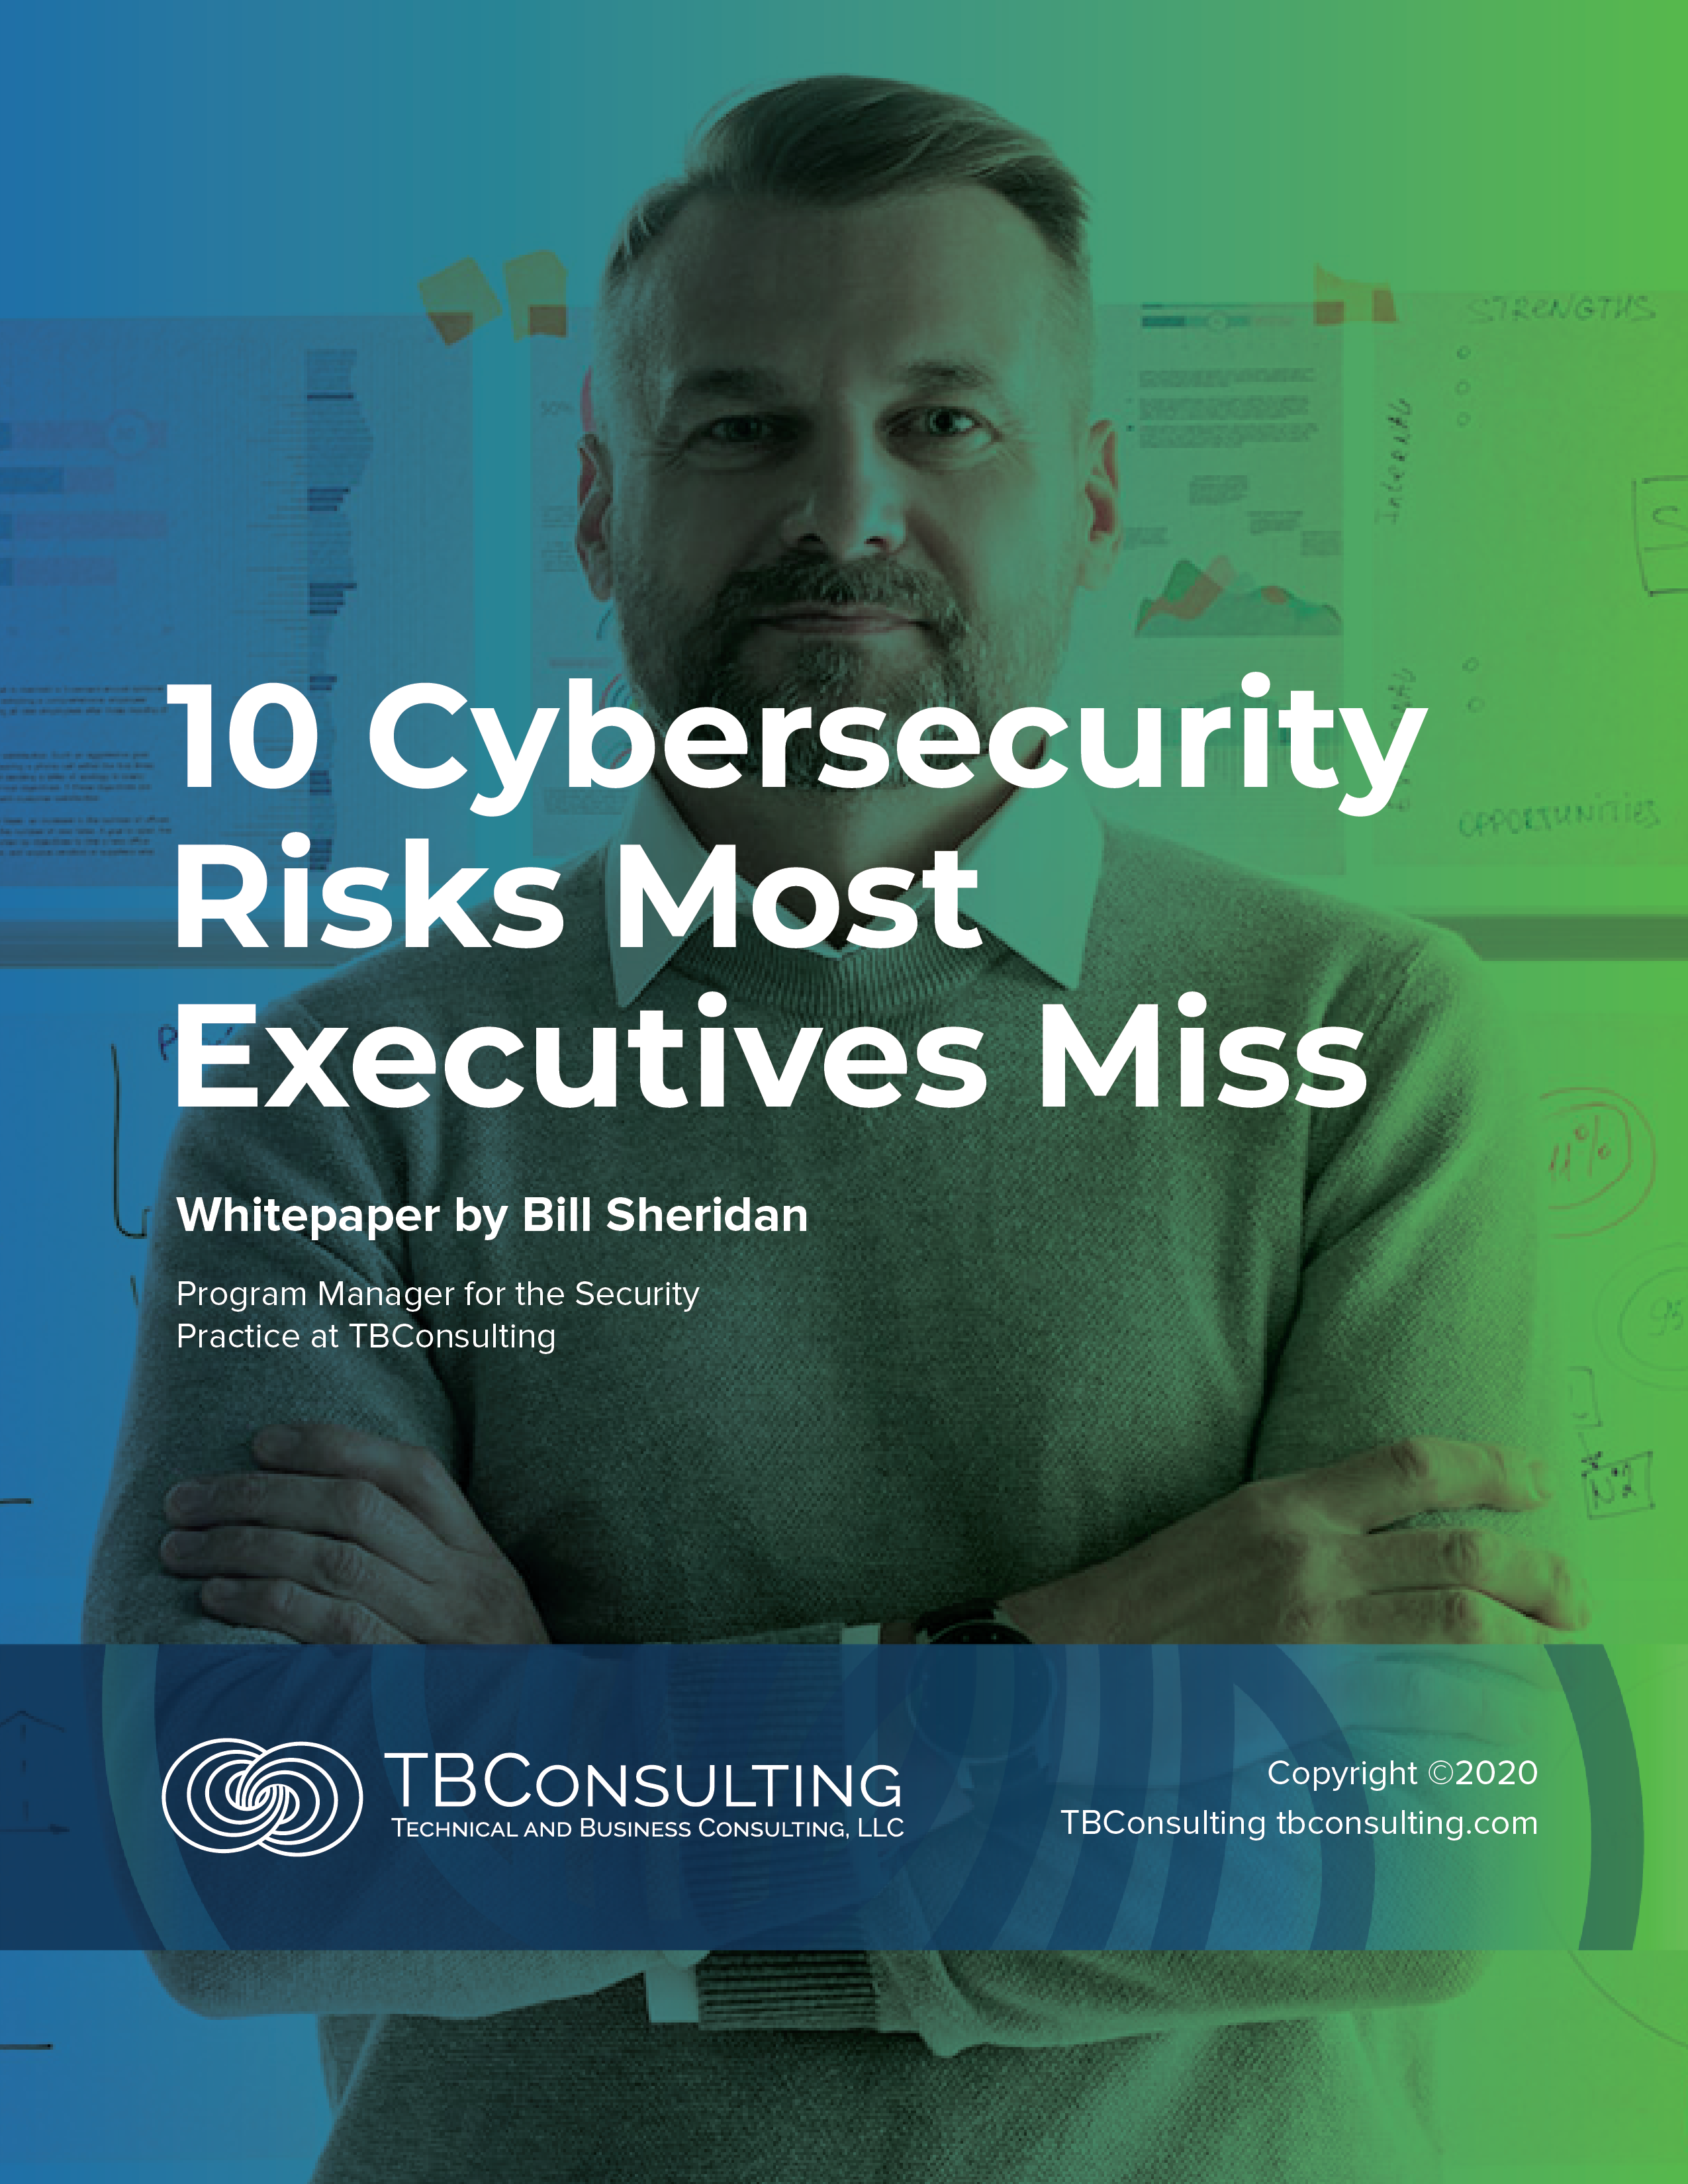 10 Cyber Security Risks_01Cover_062320